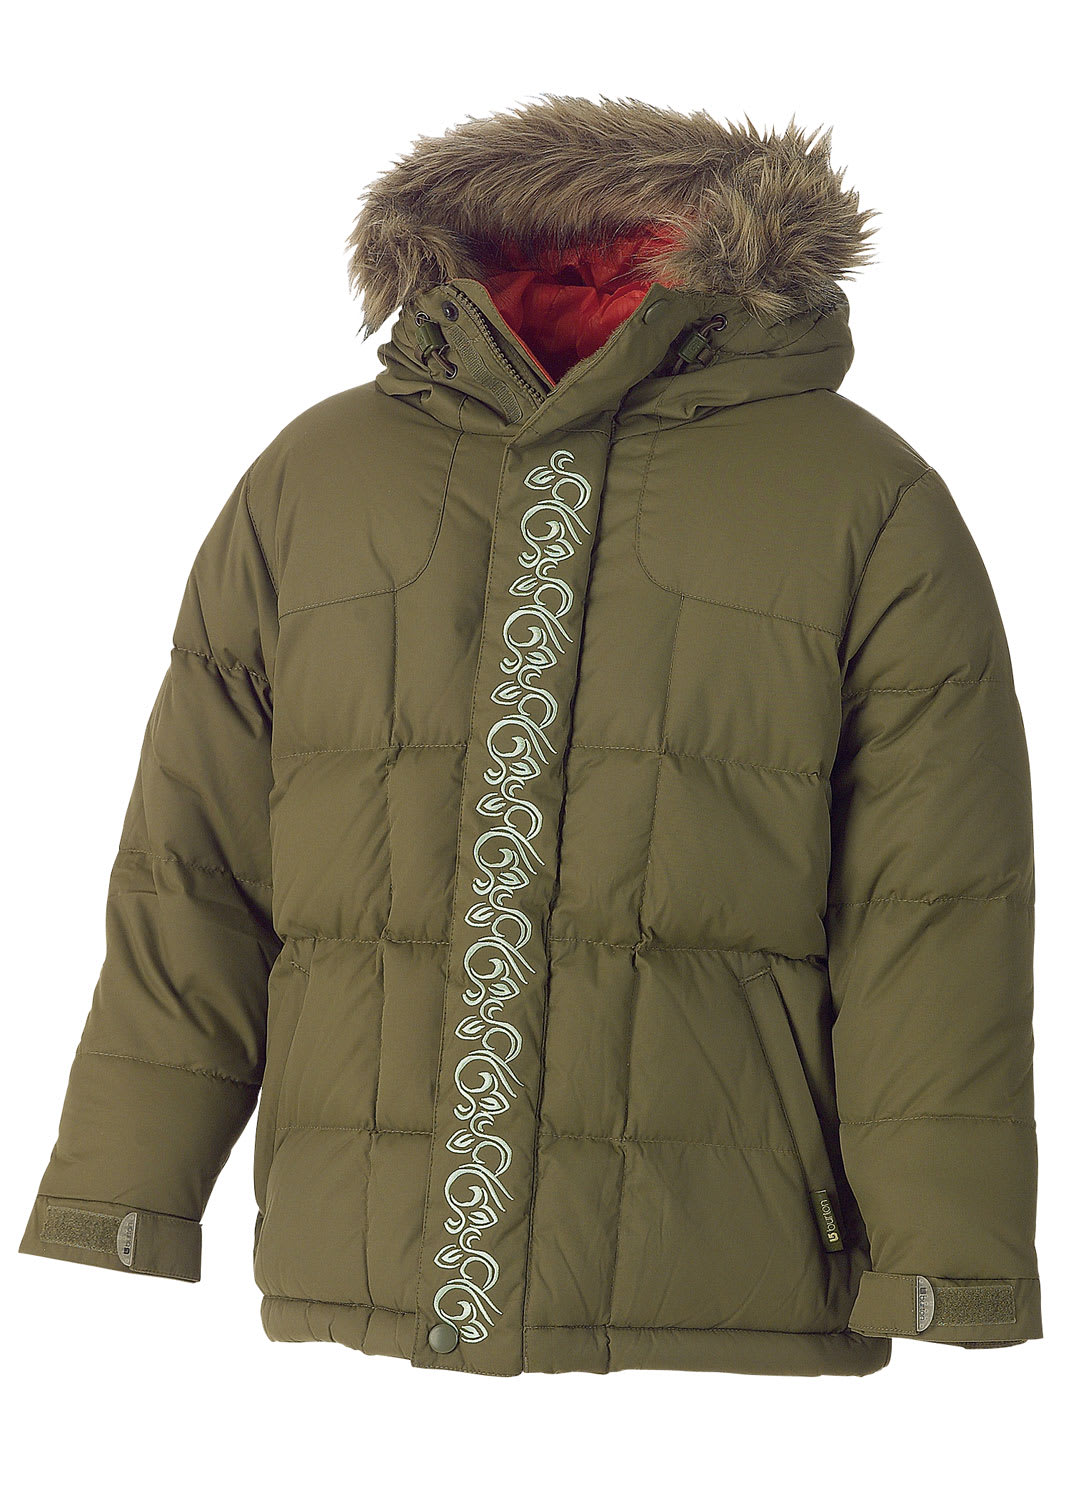 Shop for Burton Puffy Snowboard Jacket Hazel - Girl's